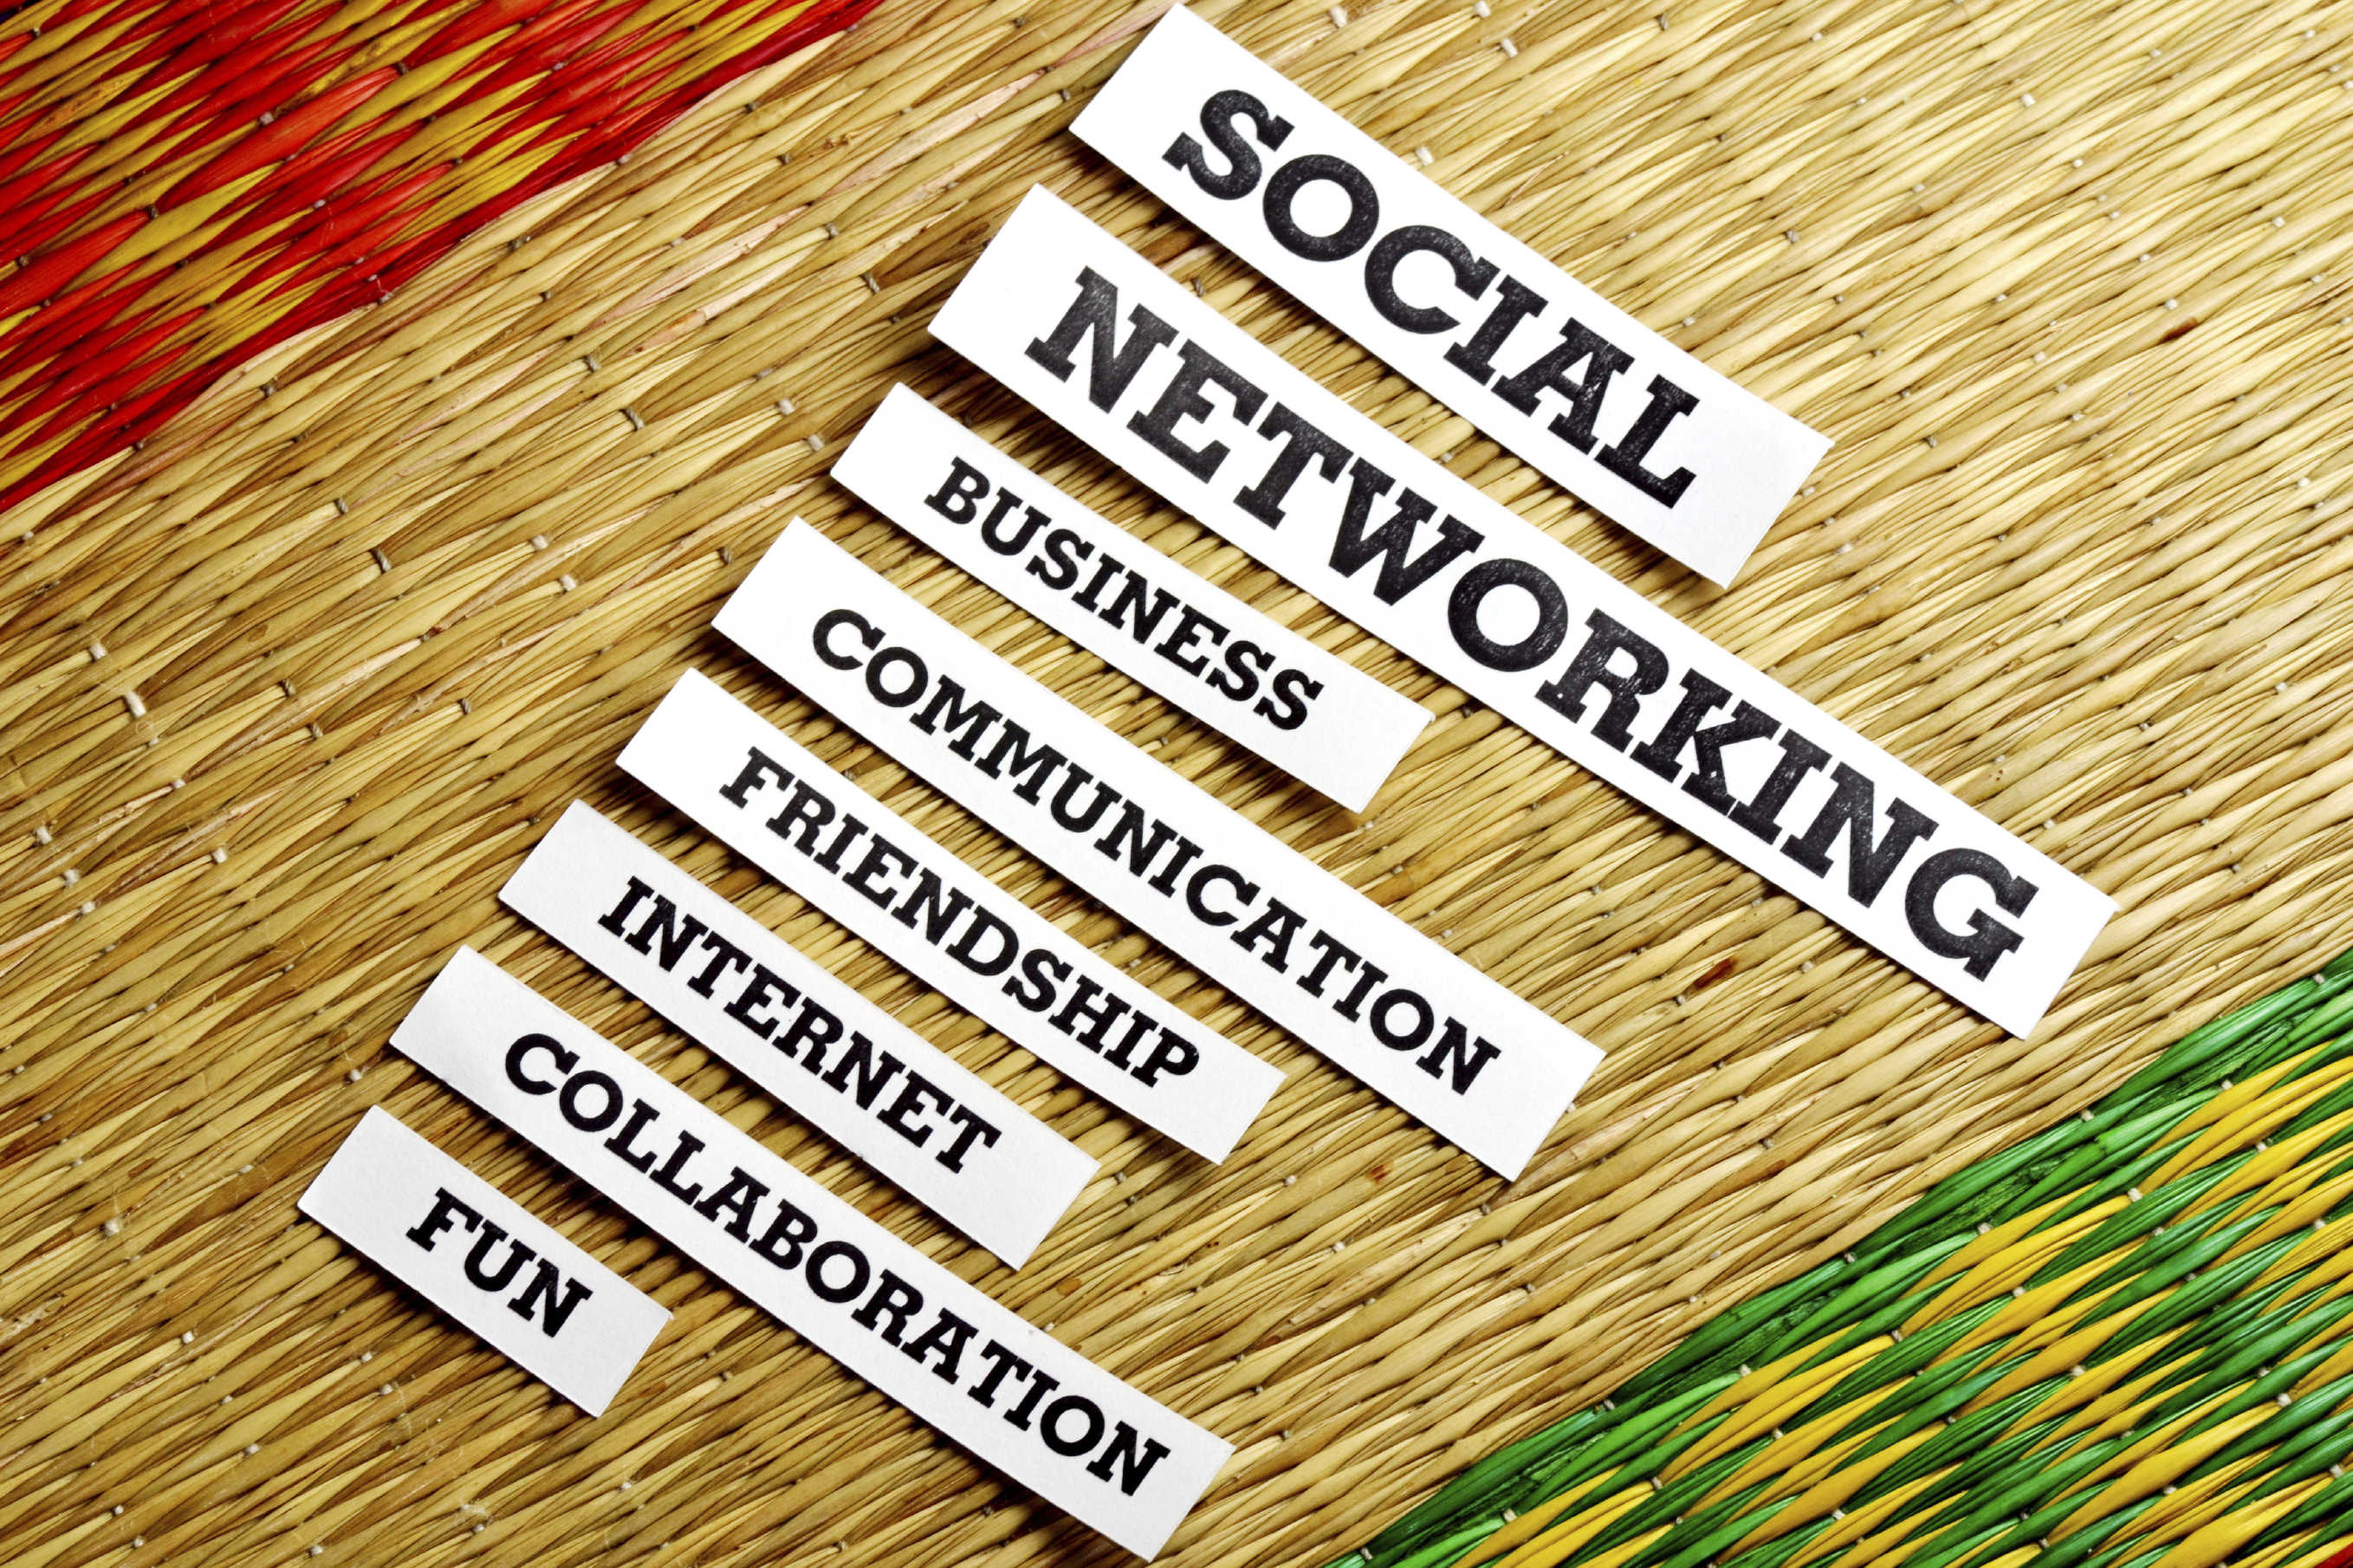 Wish to be popular in your network? Let LinkedIn do the work!